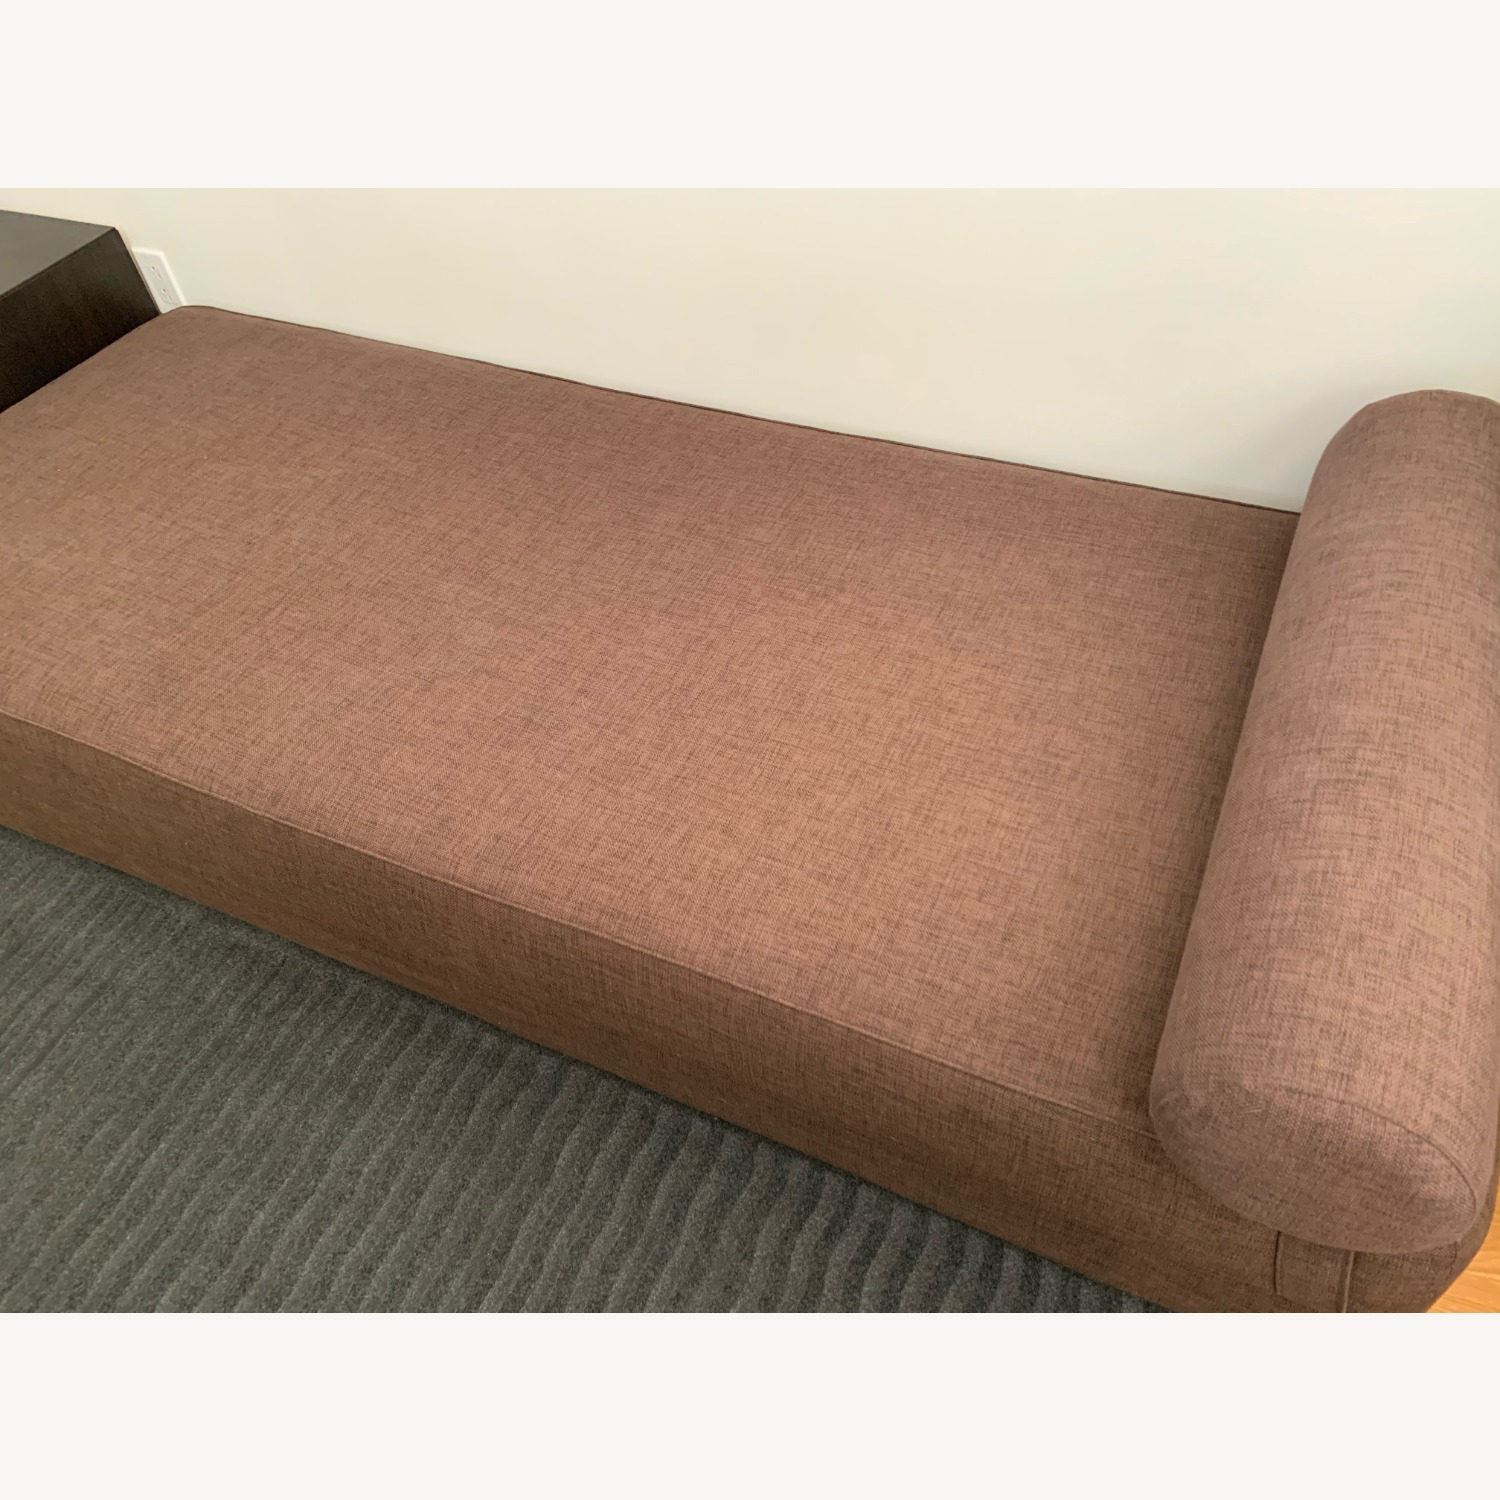 CB2 Lubi Brown Daybed - image-2